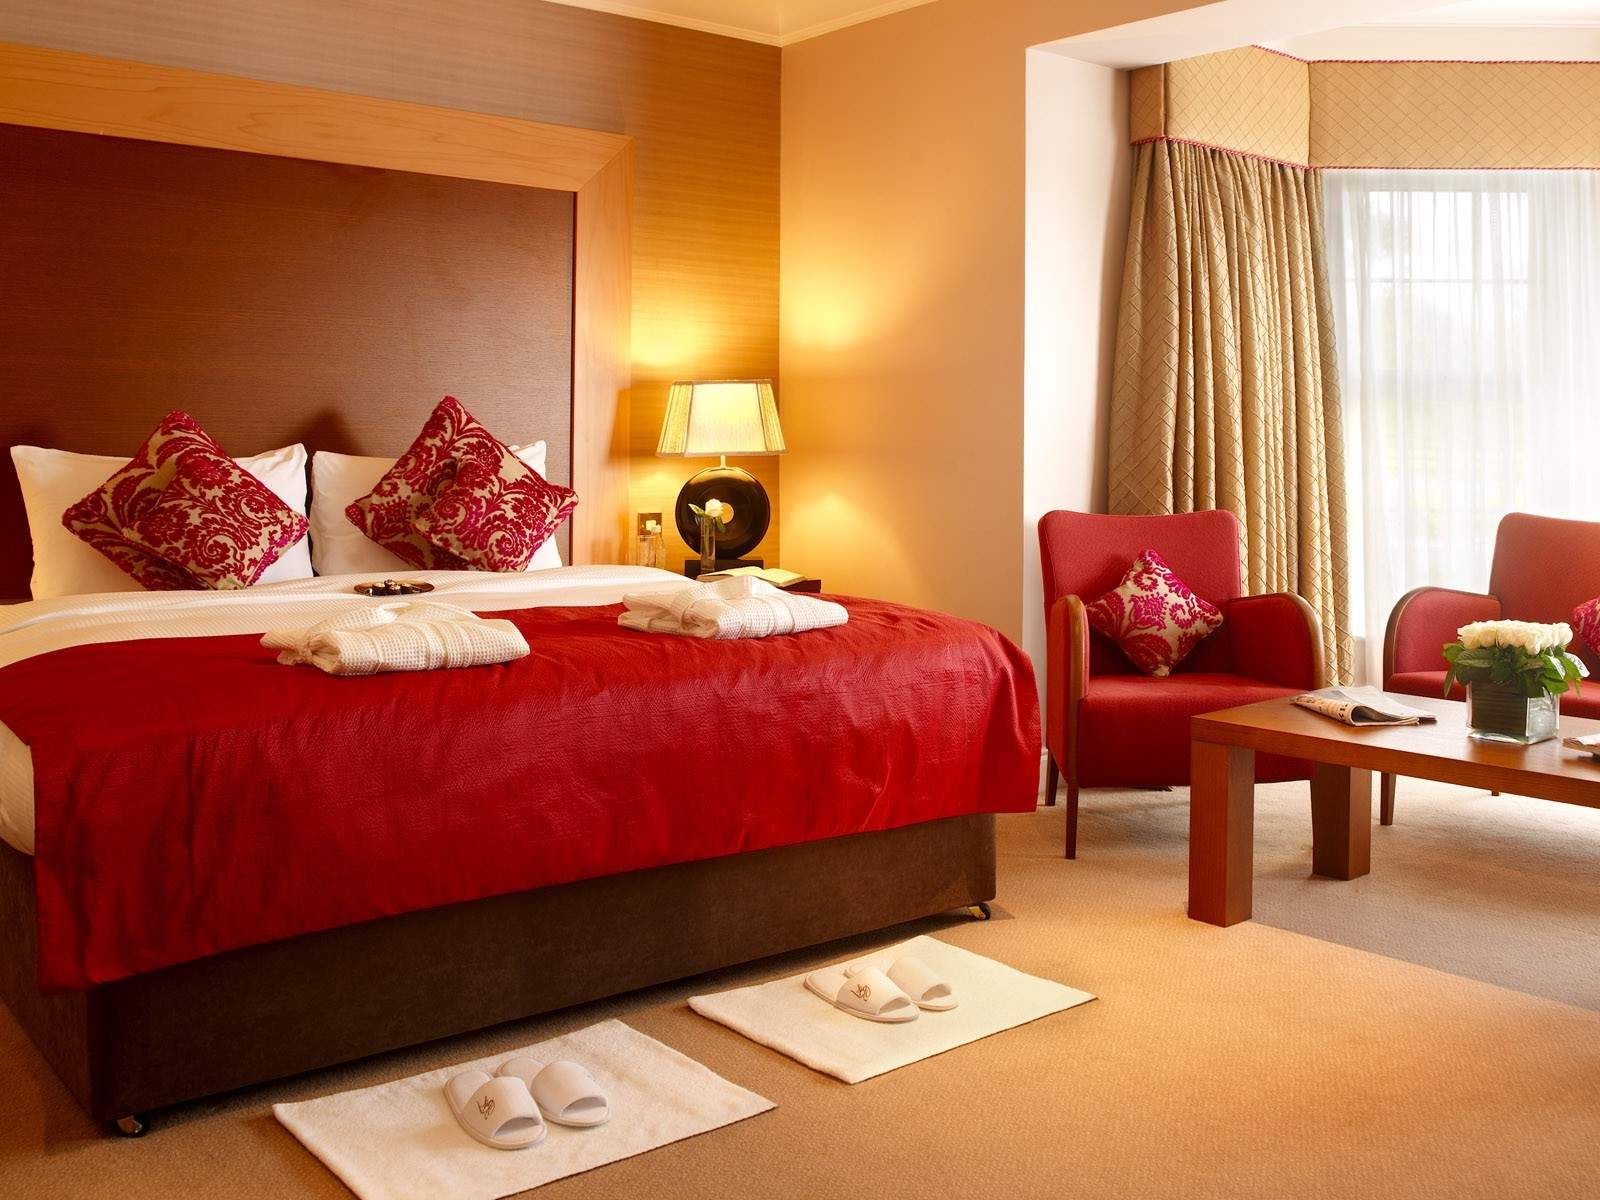 Interior red bedroom design ideas for couple with comfortable bed